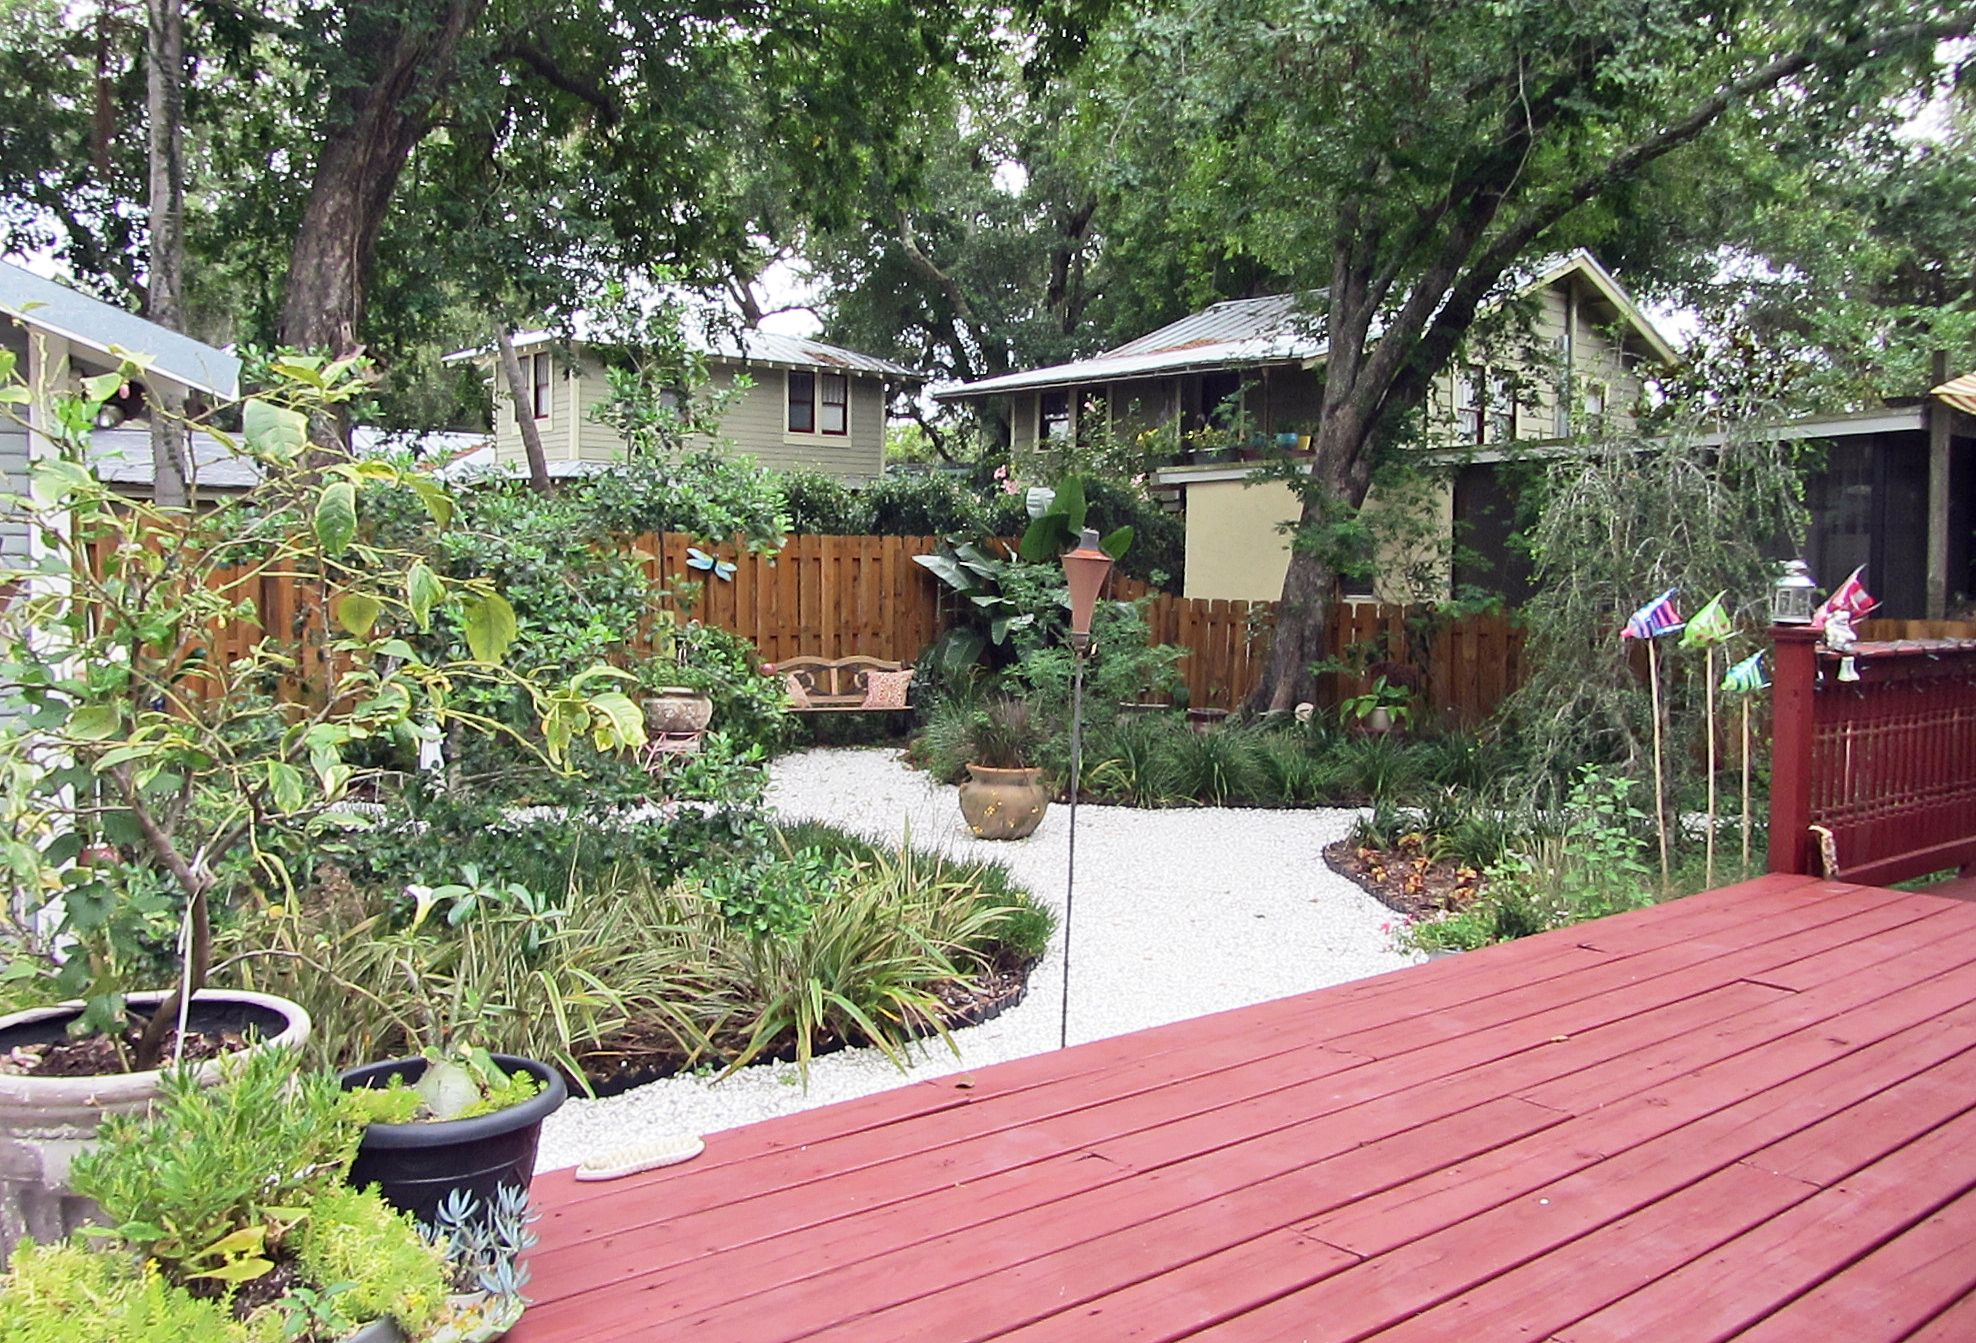 Floridify your yard Yard tips for Florida A service of the Tampa